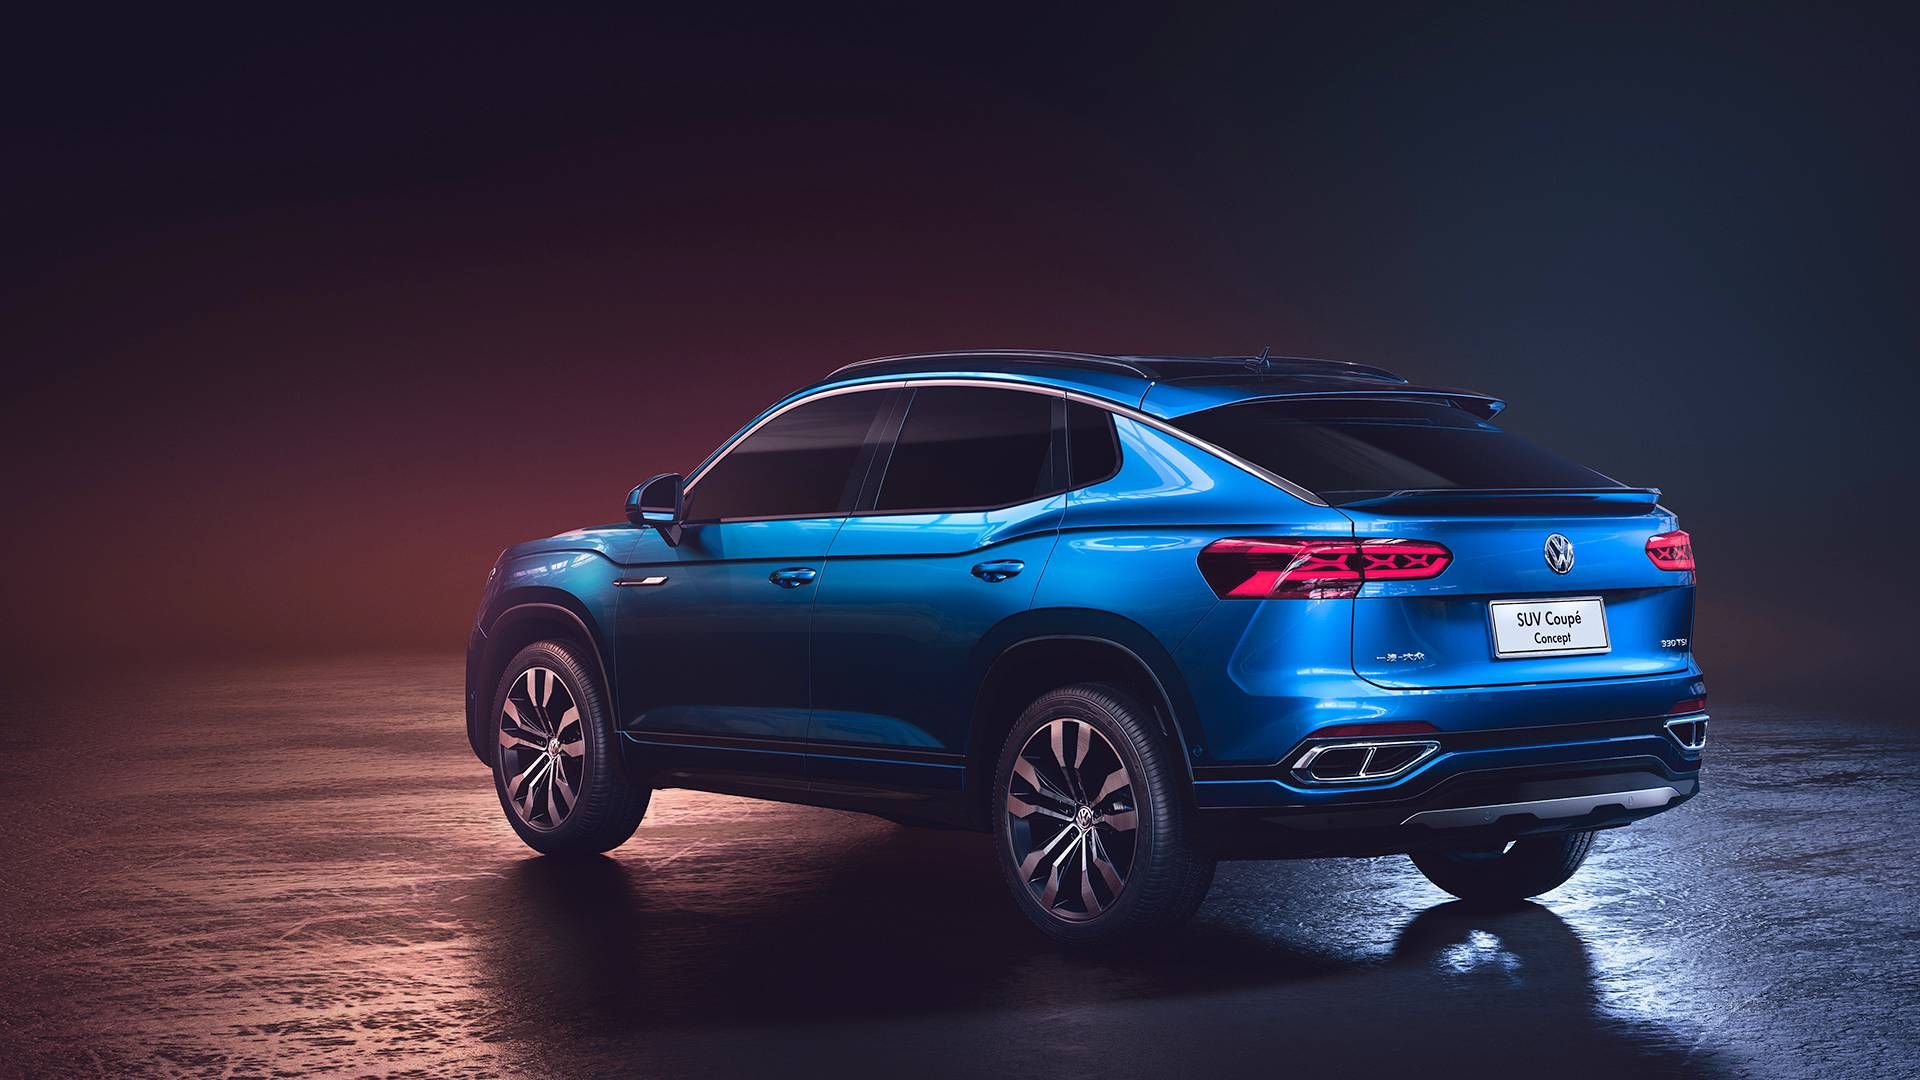 2d741be7-vw-suv-coupe-concept-2